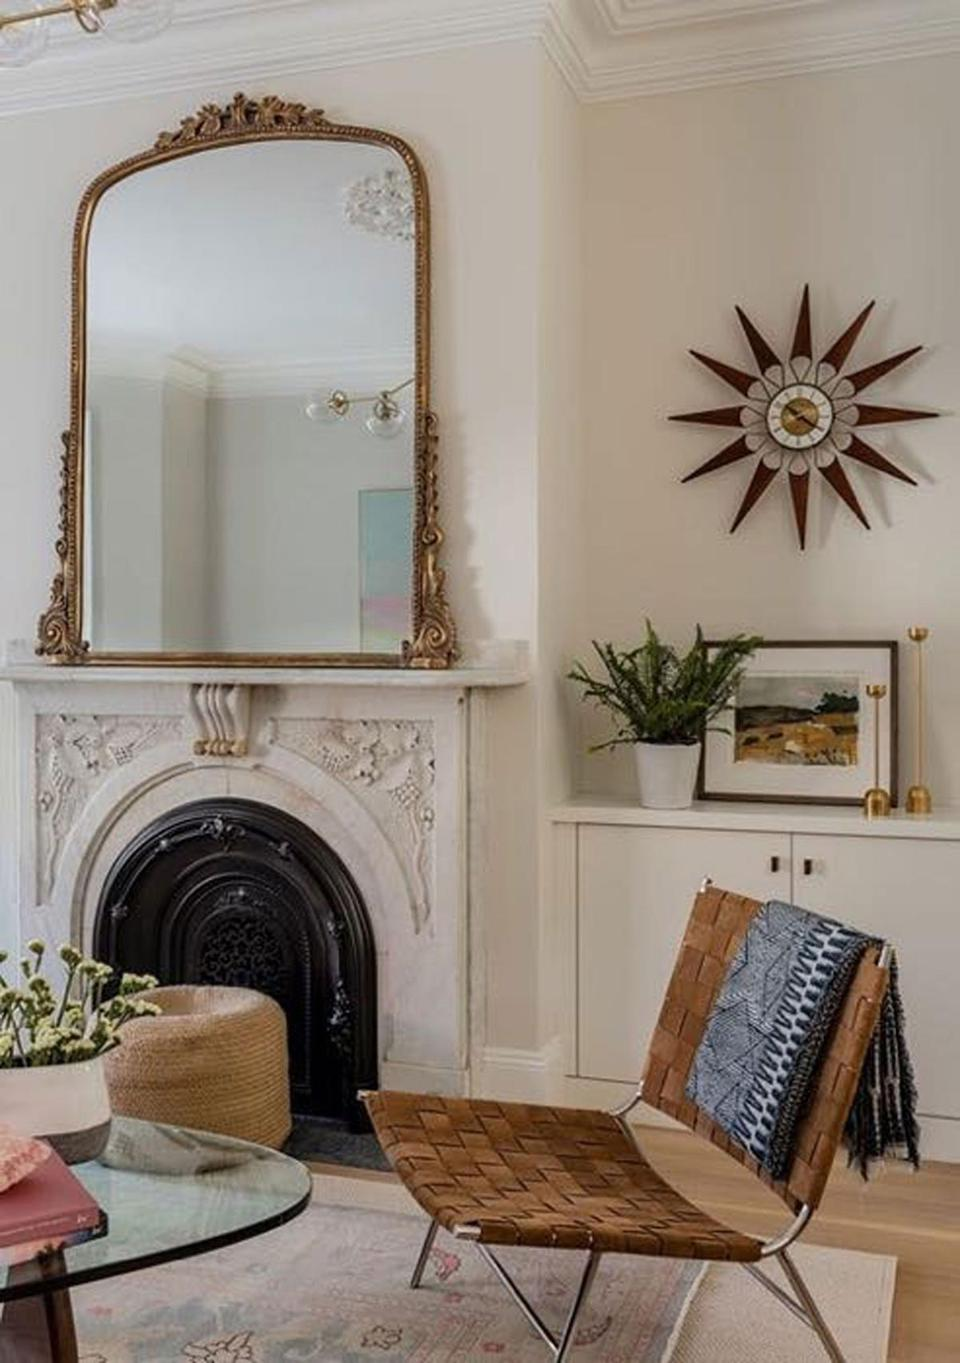 AFTER: In the living room, an ornate gold-framed mirror from Anthropologie now adorns the original stone mantel, and a vintage 1950s brass-and-teak starburst wall clock by Elgin hangs over a new built-in cabinet.